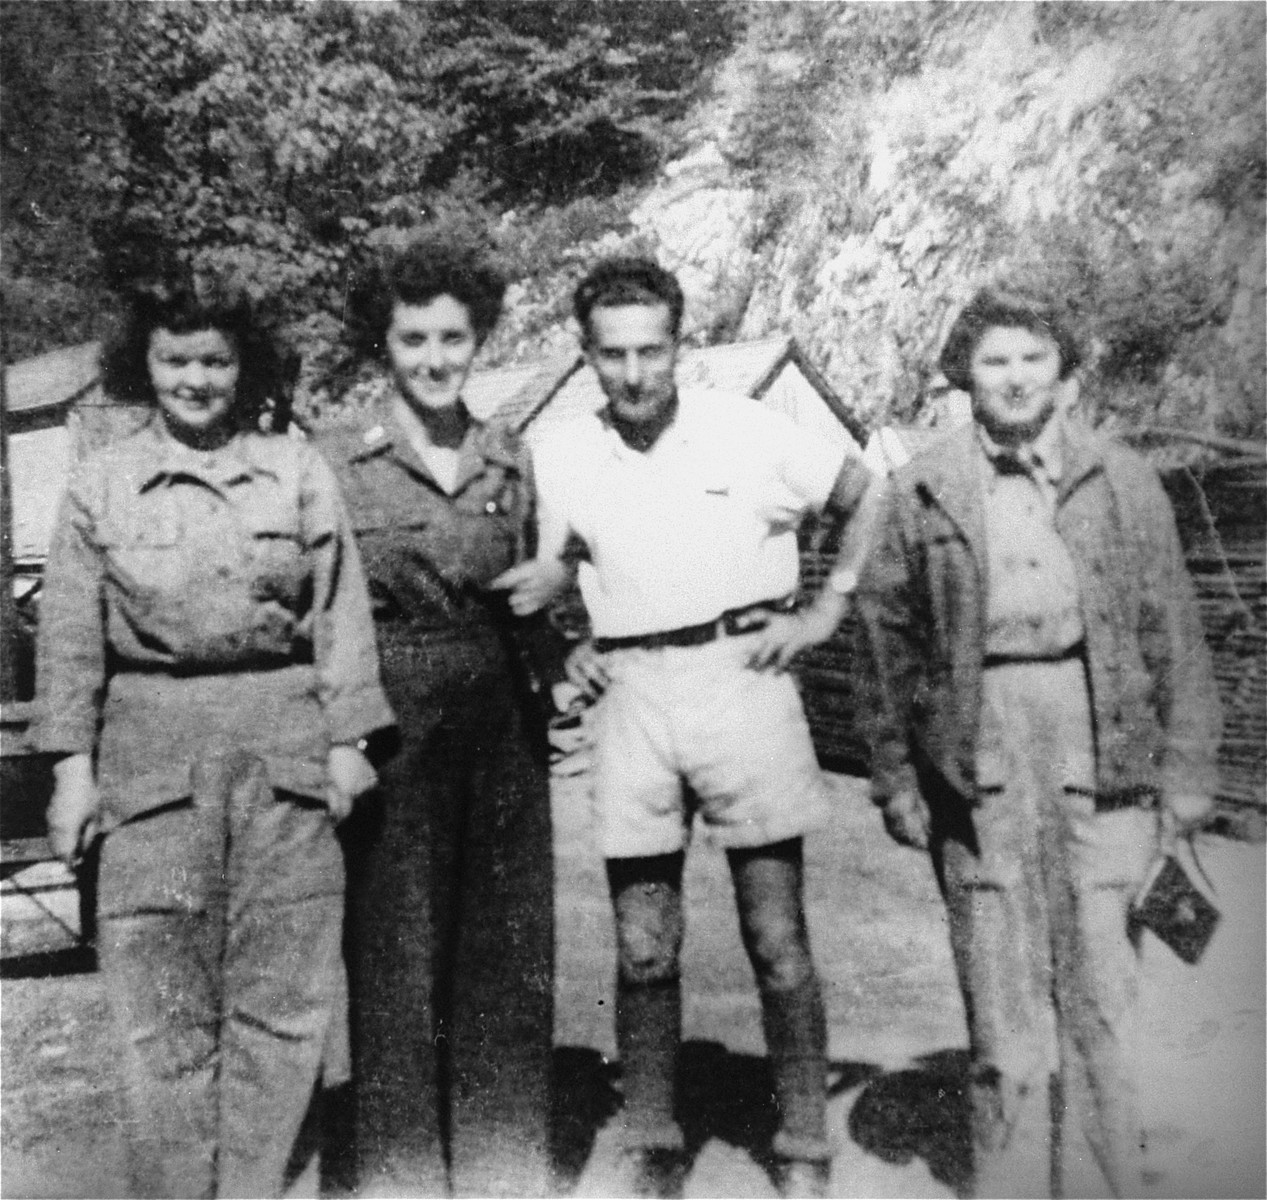 Nurses from the U.S. Army 30th Field Hospital with Adolf Burger, a survivor, in the Ebensee concentration camp.  Pictured from left to right are Lt. Mary Beggs, Lt. Julia Davis, and Lt. Ada Timmer.